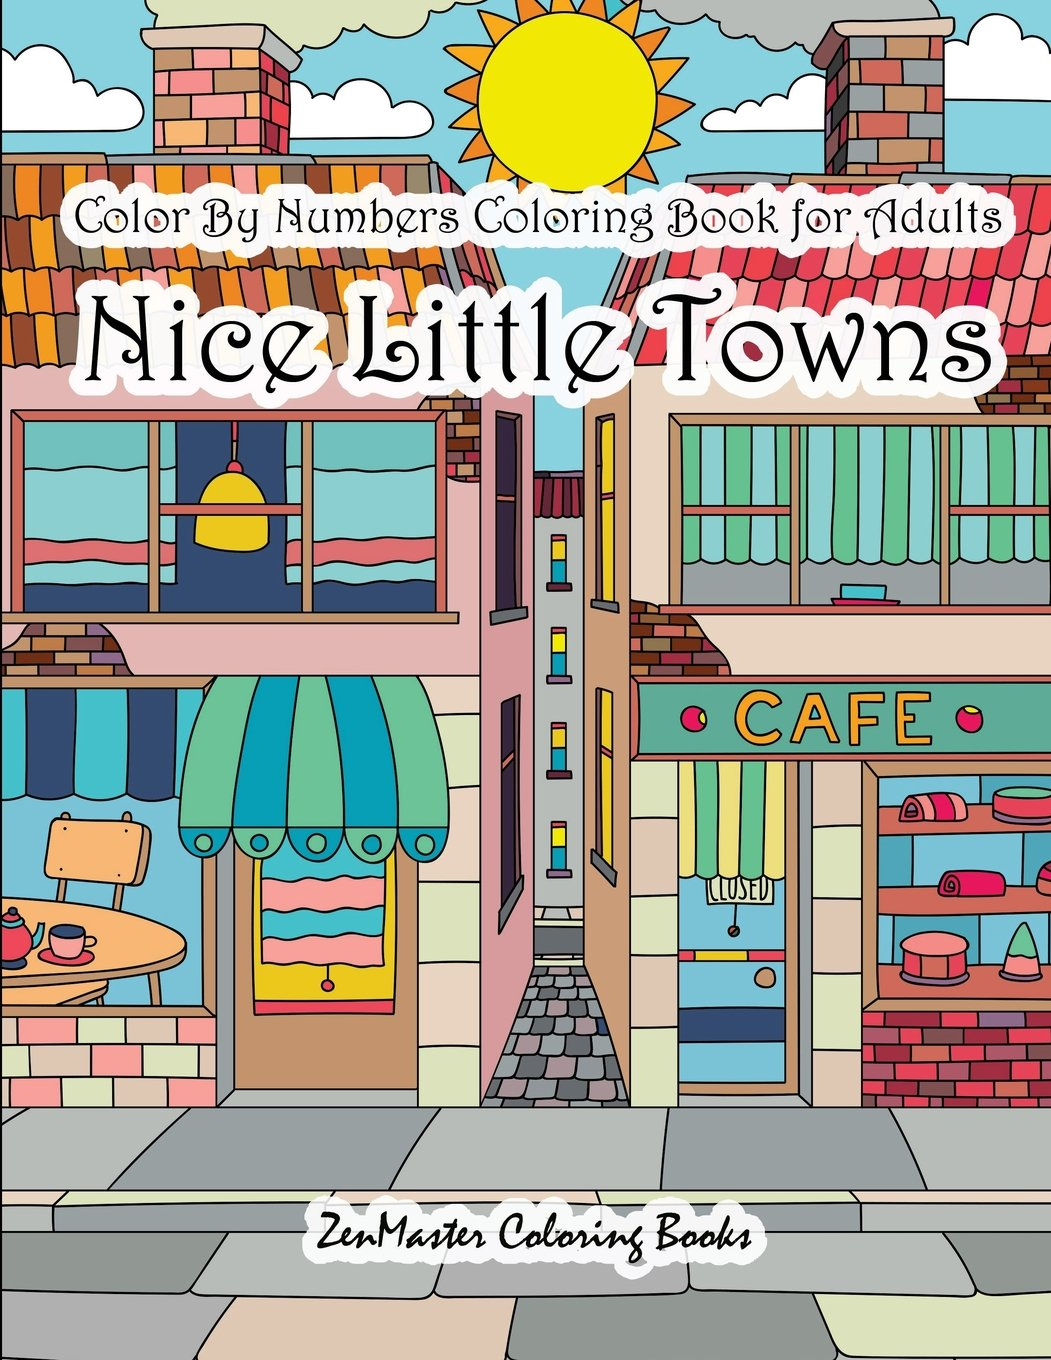 750 Number Coloring Book Games Free Images